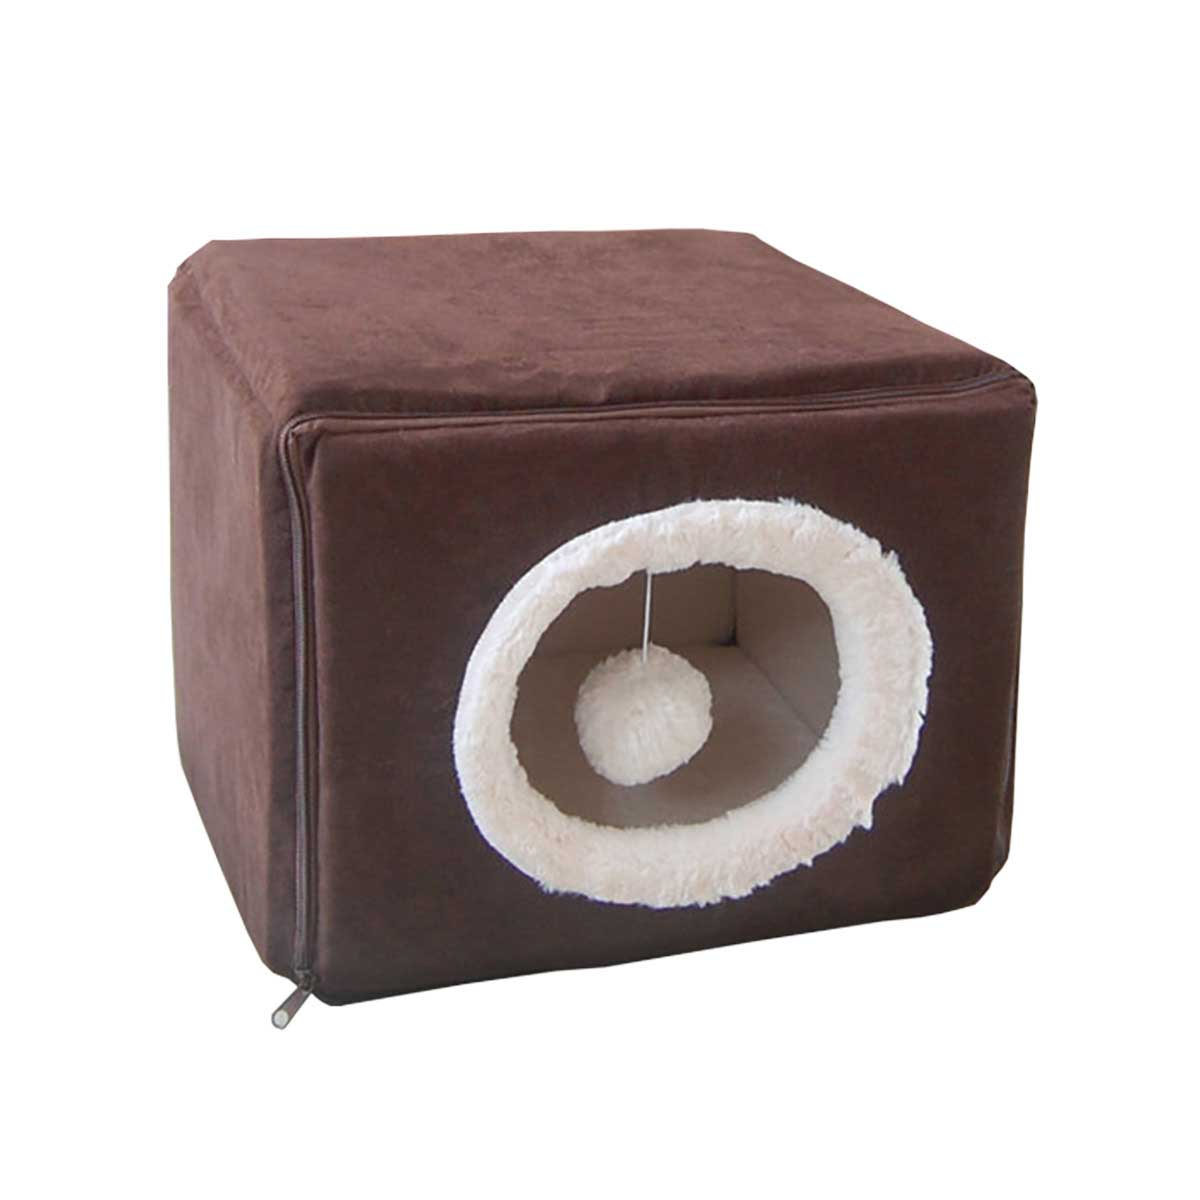 FurHaven Sherpa/Suede Cozy Cube - 18 by 18 by 15 inches - Espresso